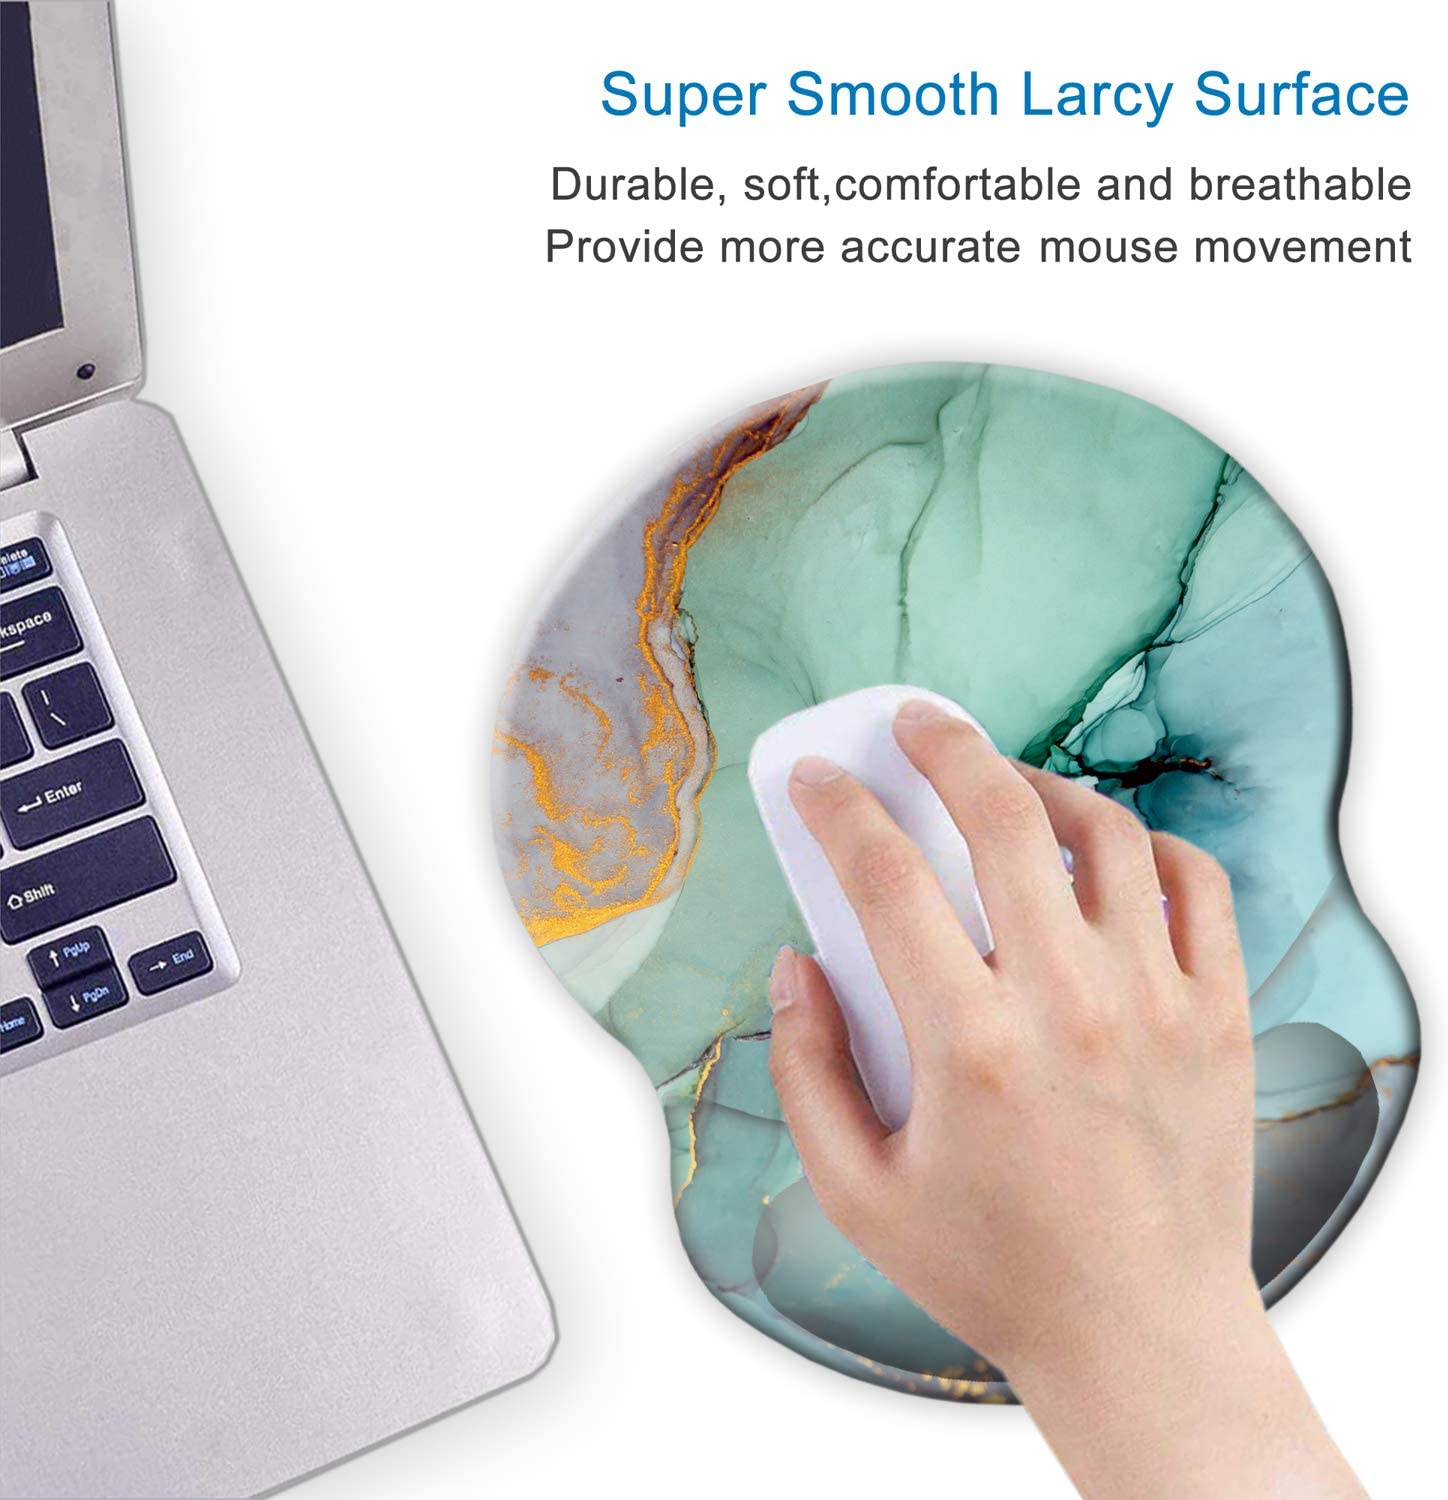 Laptop Ergonomic Mouse Pad with Wrist Support Gel,ITNRSIIET Cute Flower Wrist Pad with Non-Slip PU Base for Computer Easy Typing /& Pain Relief Home Office Gaming Working